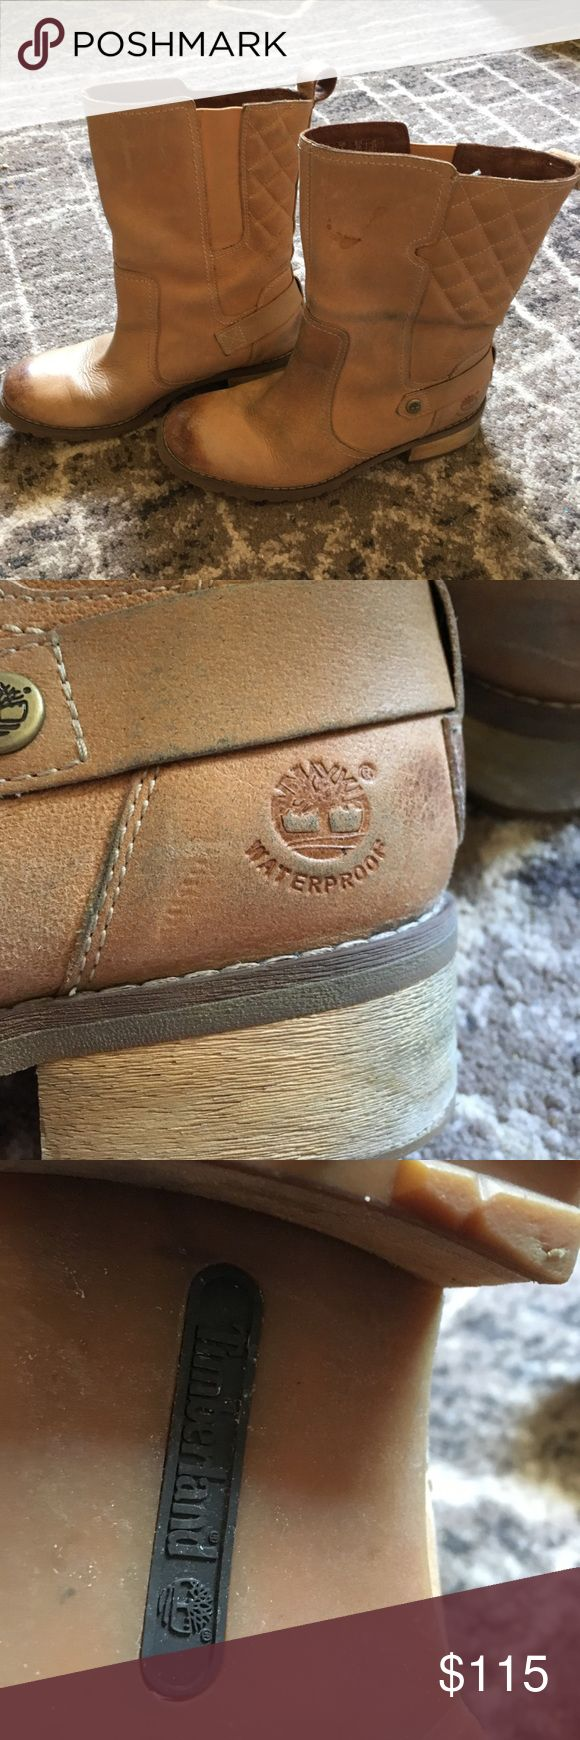 Women's Timberland fall / winter boots waterproof In excellent condition -- barely worn! Size 8 or EUR 39. TimberDry waterproof boots by Timberland. Timberland Shoes Winter & Rain Boots